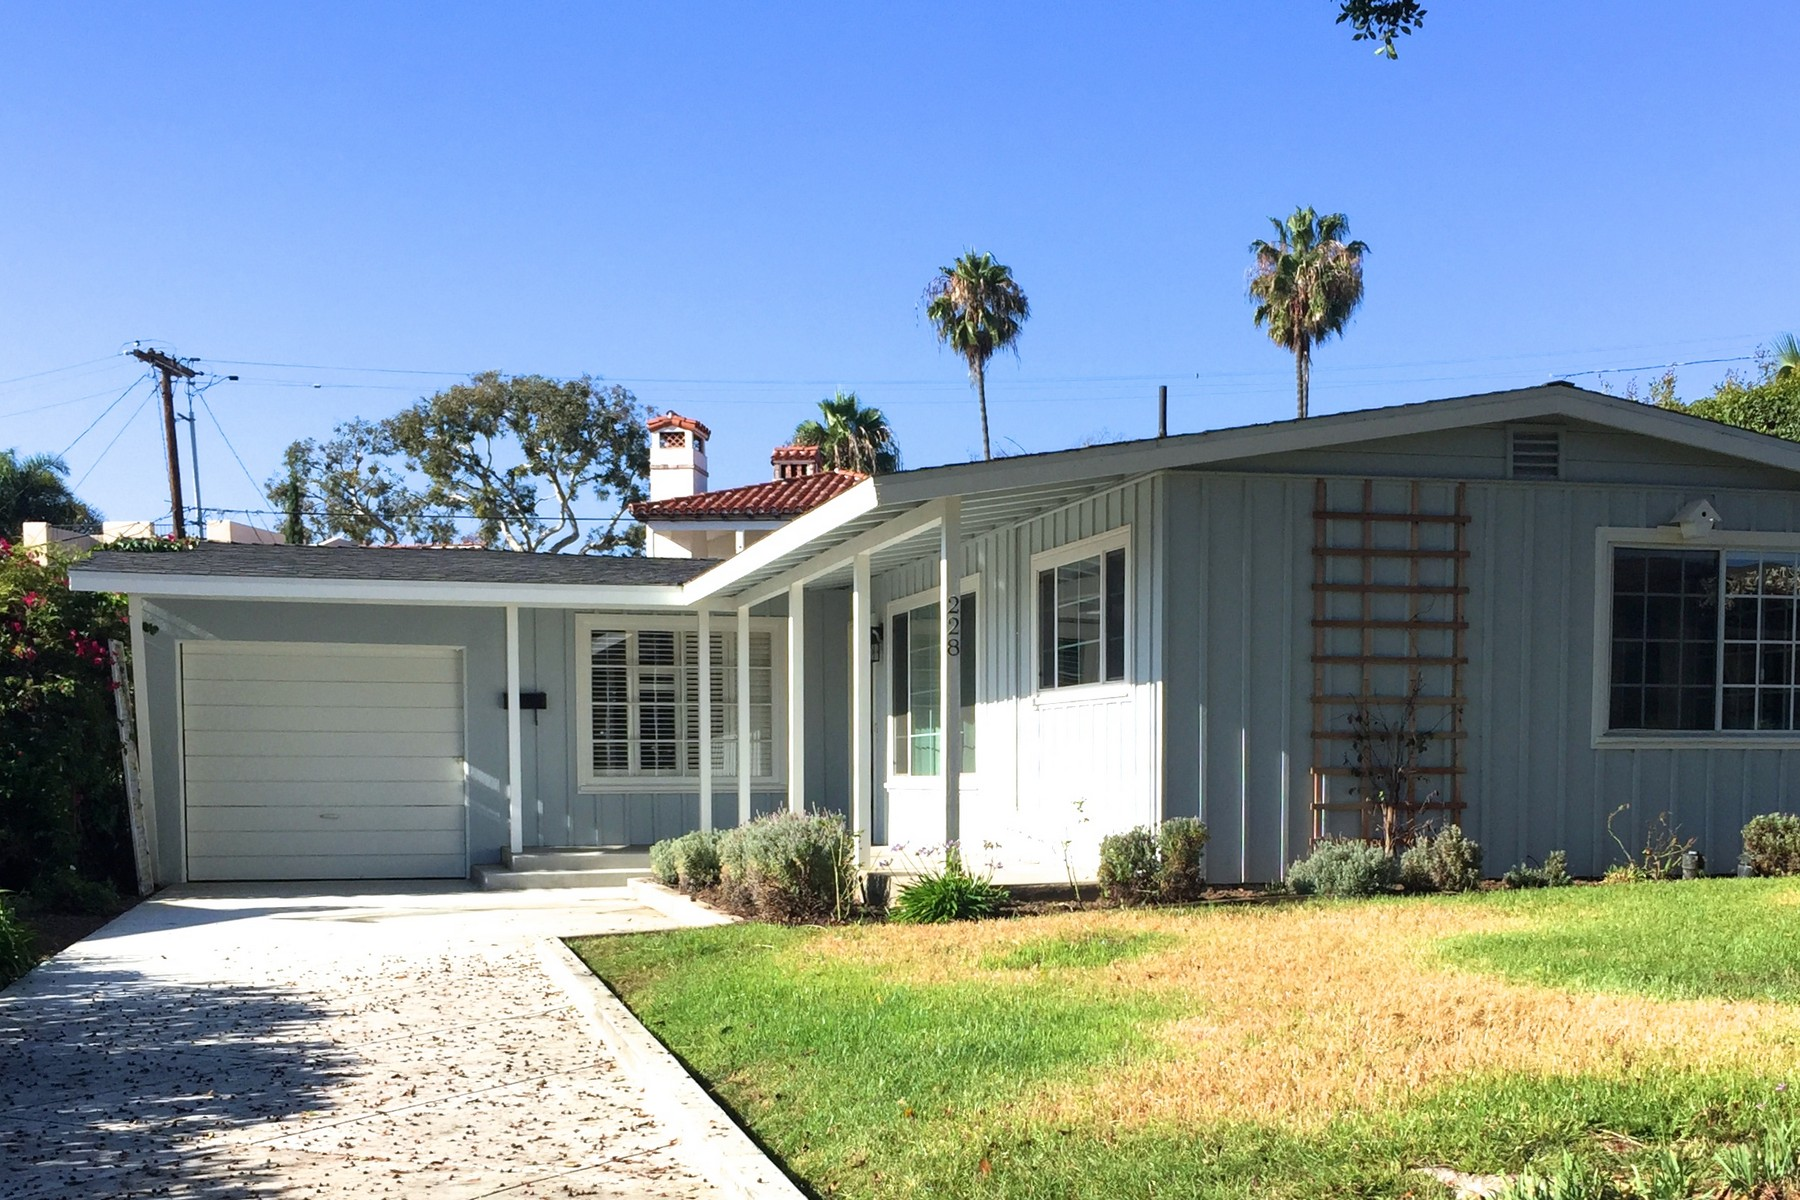 Single Family Home for Sale at 228 Calle Marina San Clemente, California 92672 United States